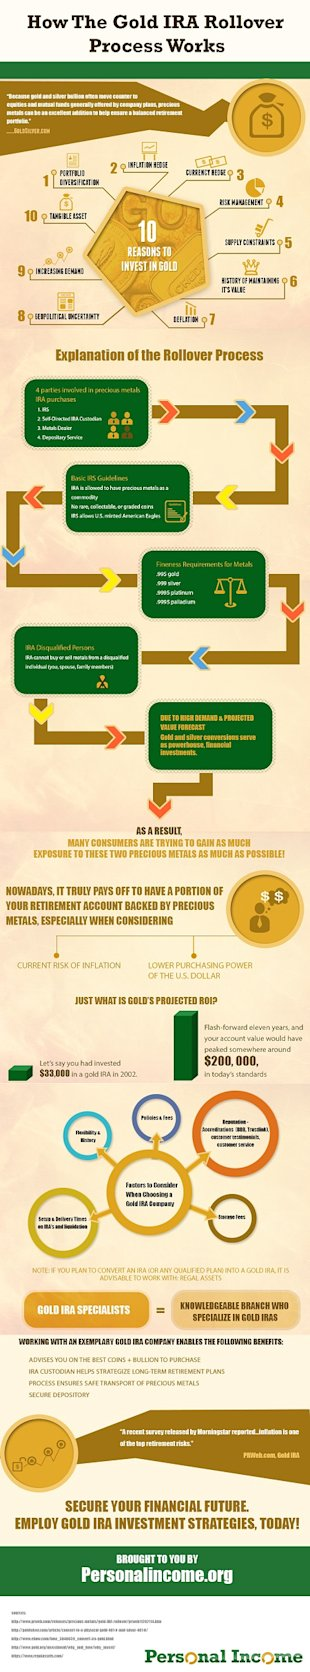 Infographic Released Depicts the Value with Investing in Gold image goldira